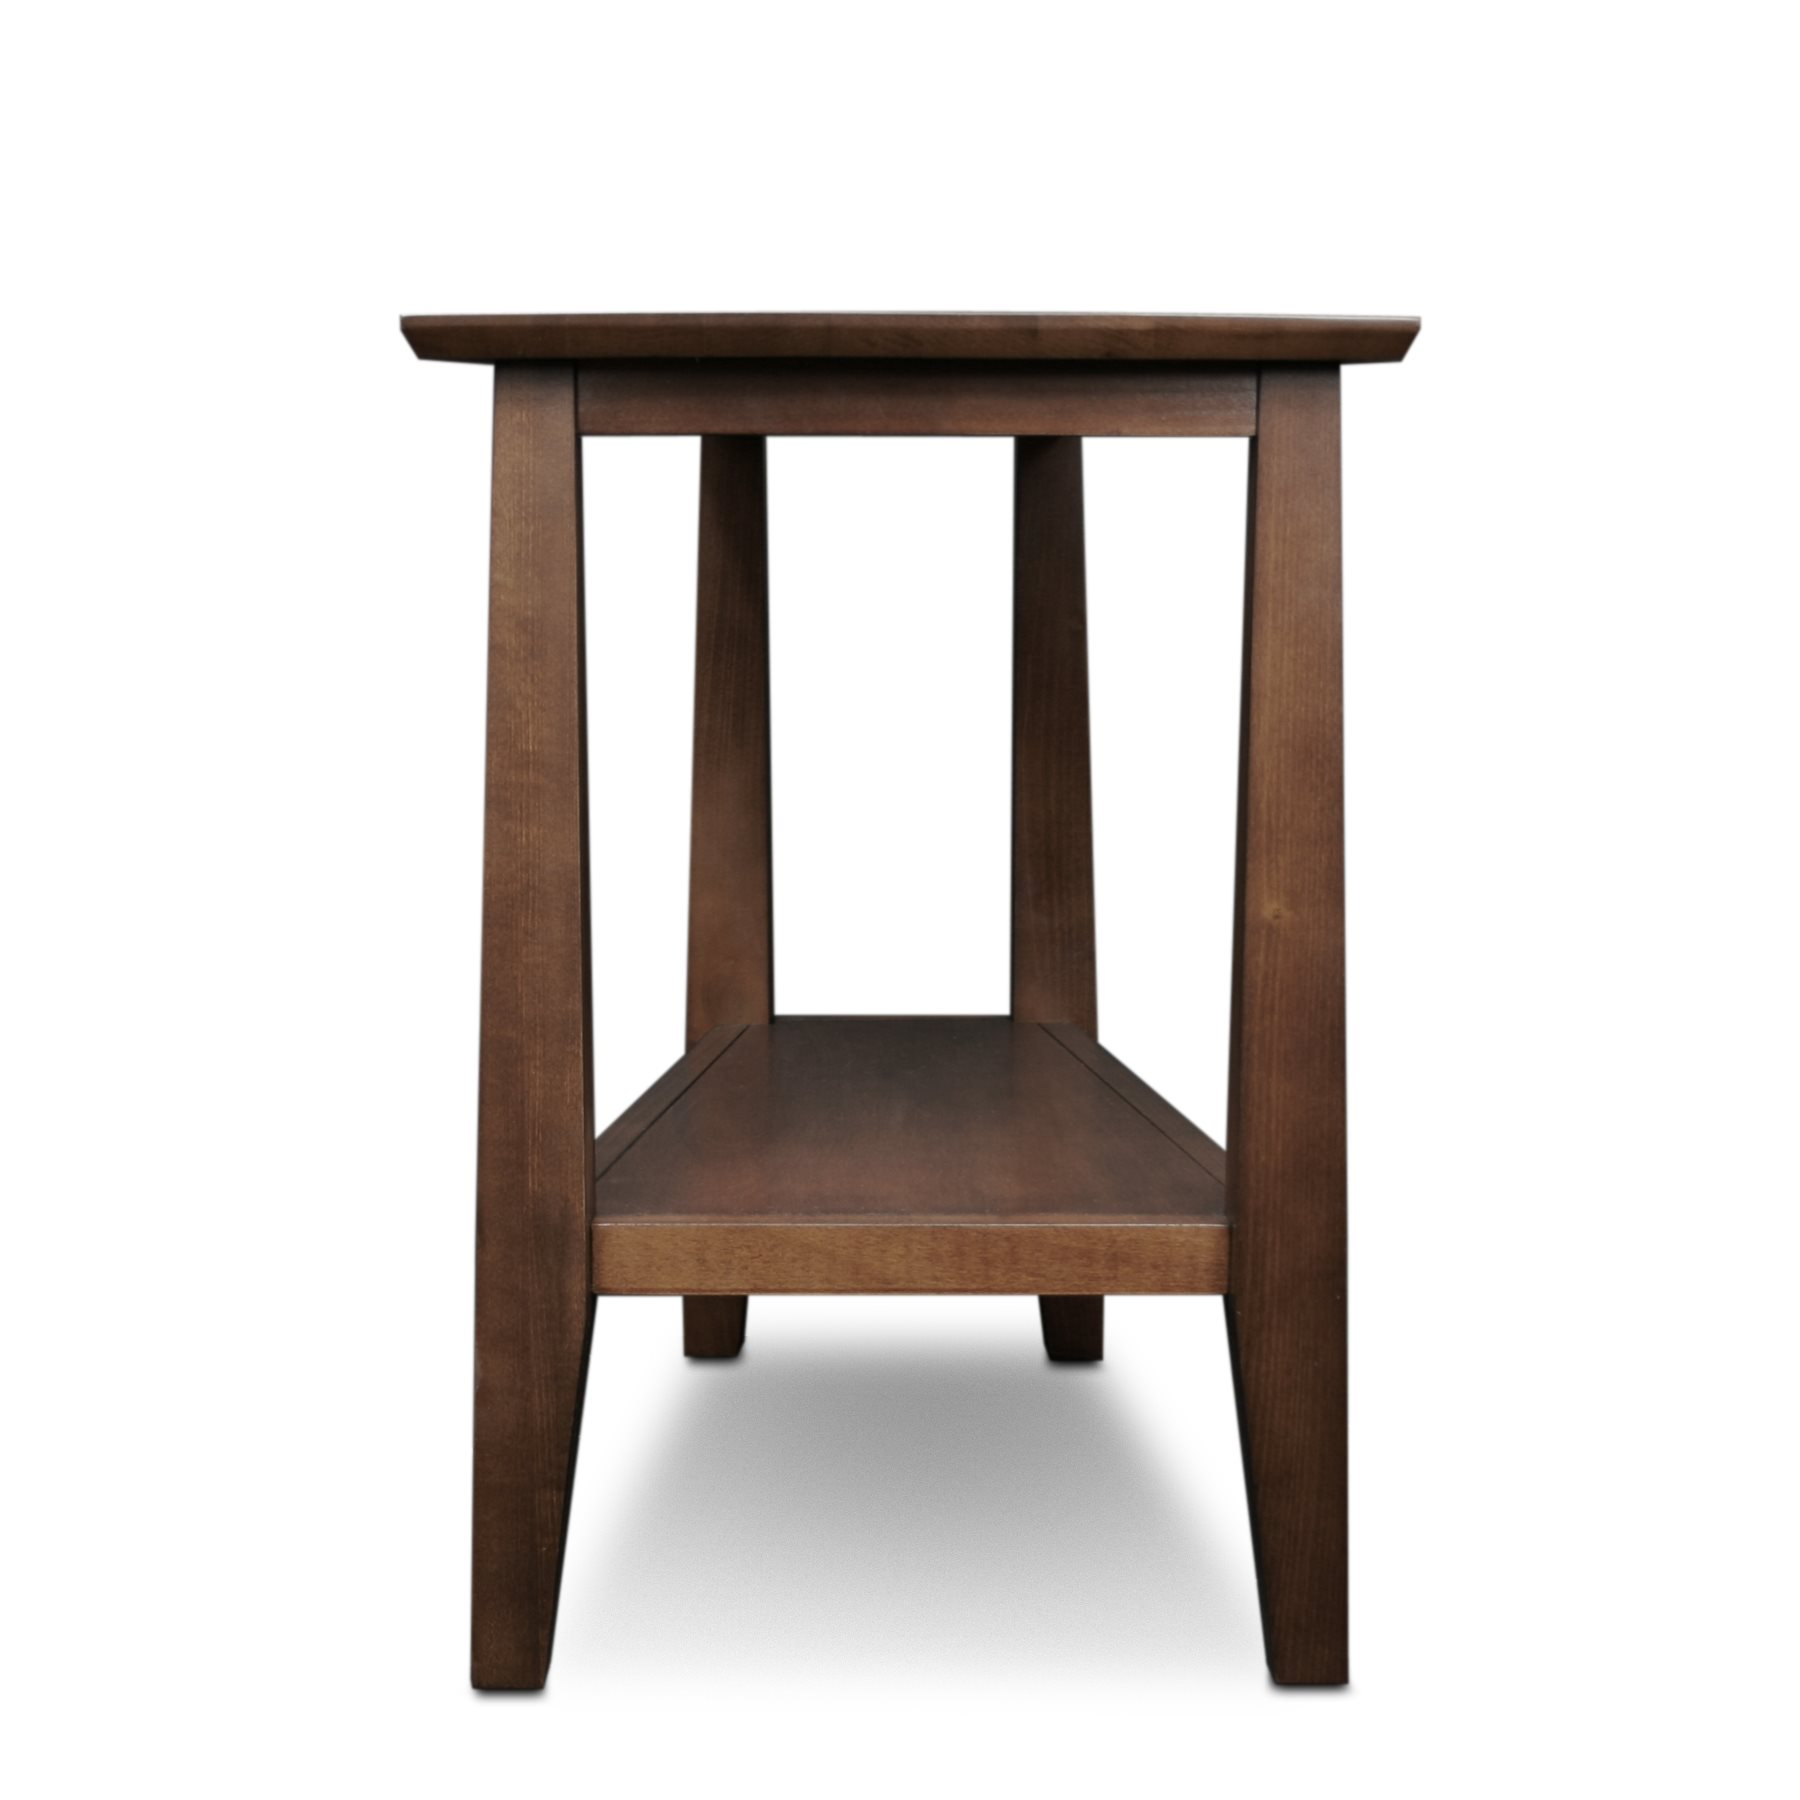 Leick Furniture Delton Sienna Recliner Wedge Table